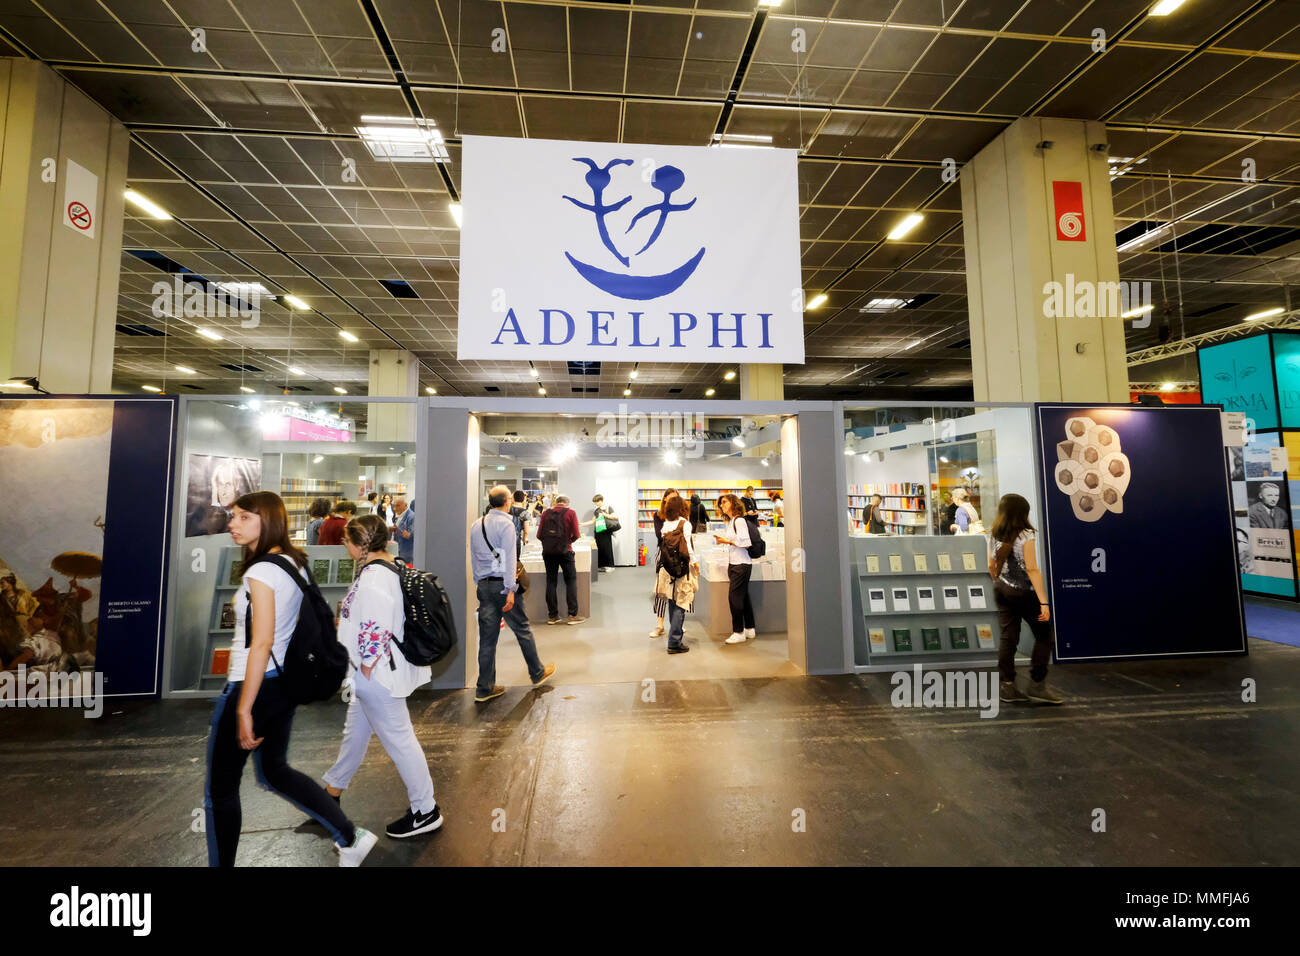 Turin, Piedmont, Italy, 10th May, 2018. International Book fair 2018,first day.Adelphy publisher's stand Credit: RENATO VALTERZA/Alamy Live News - Stock Image